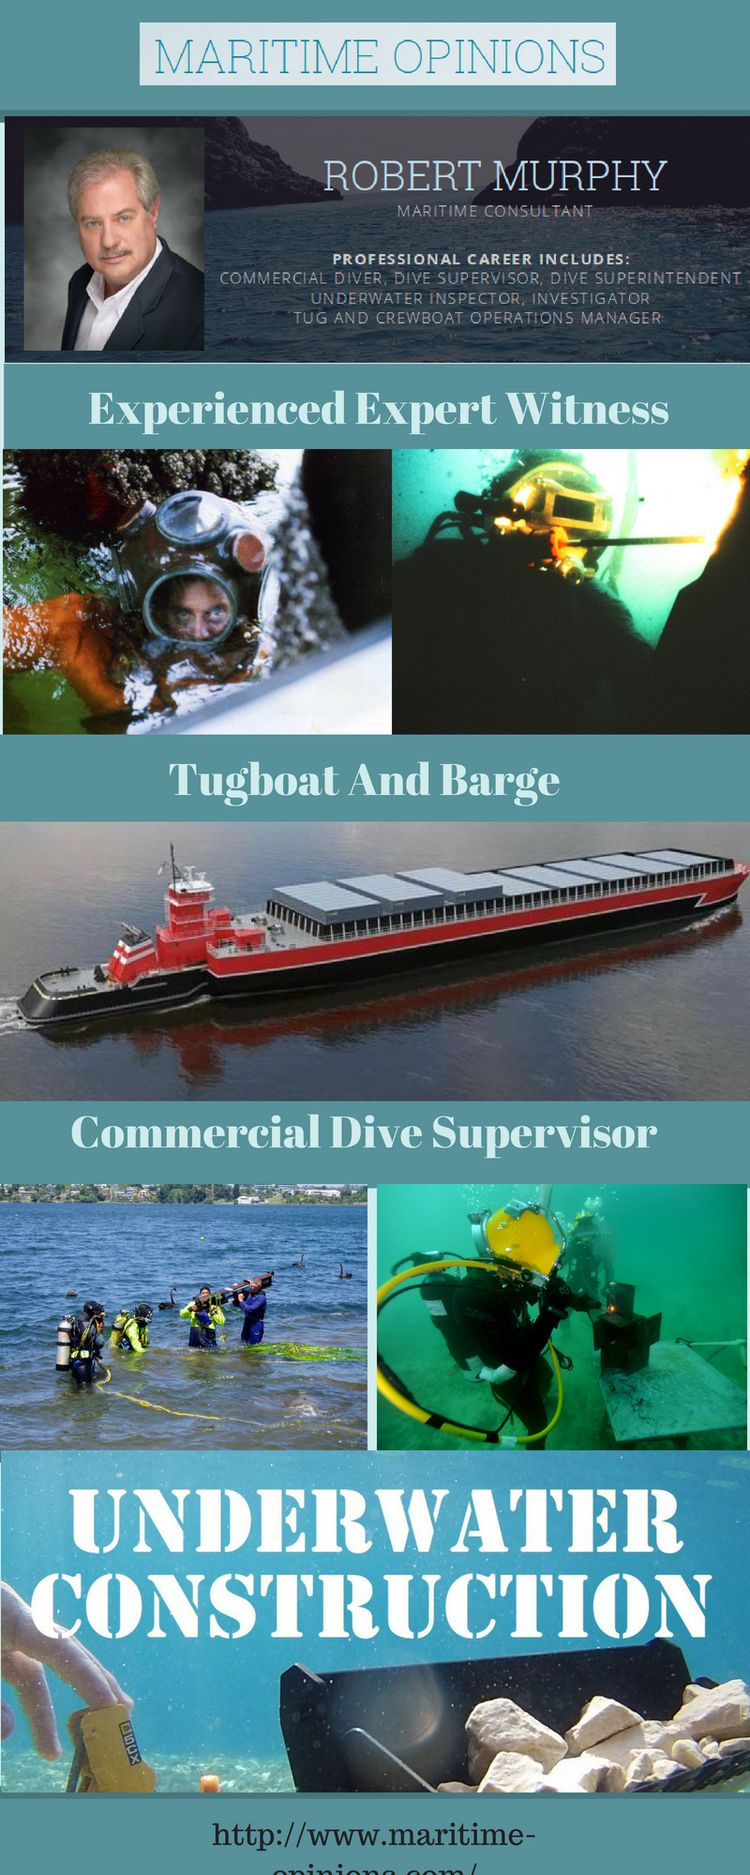 Commercial Divers Supervisors w - maritimeopinions   ello